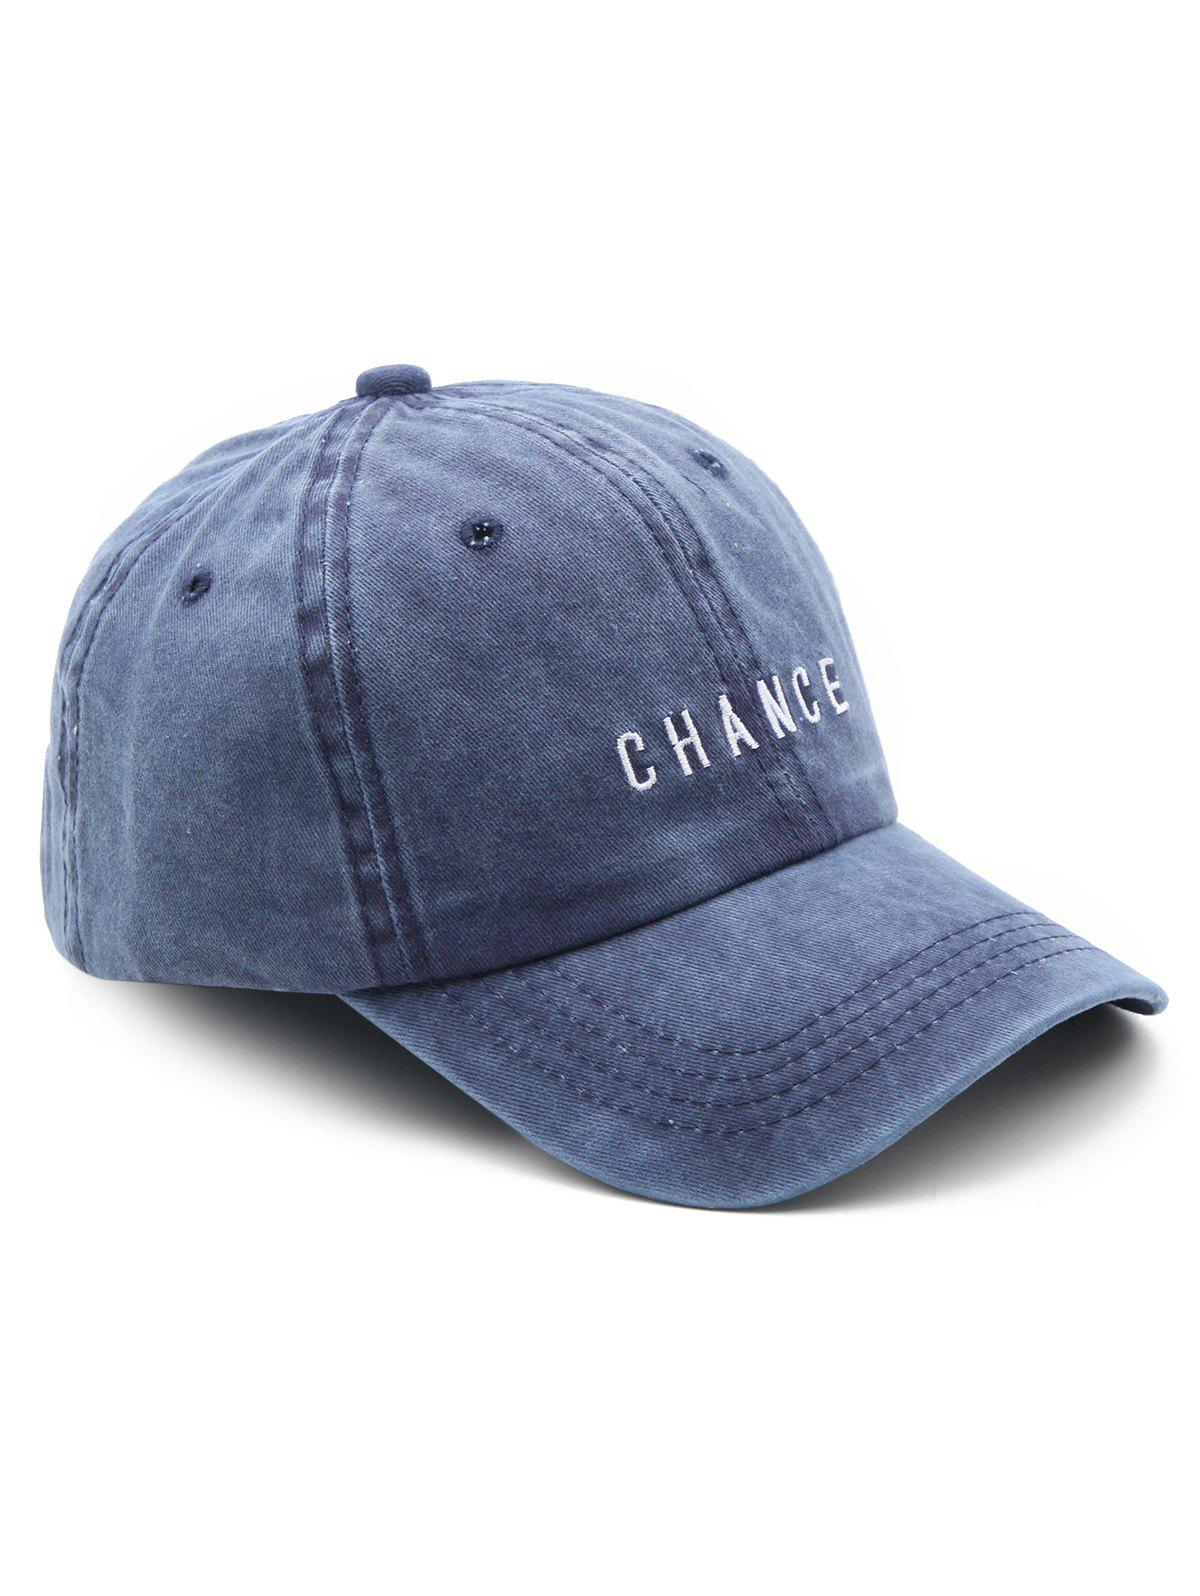 Cheap Letters Print Baseball Cap